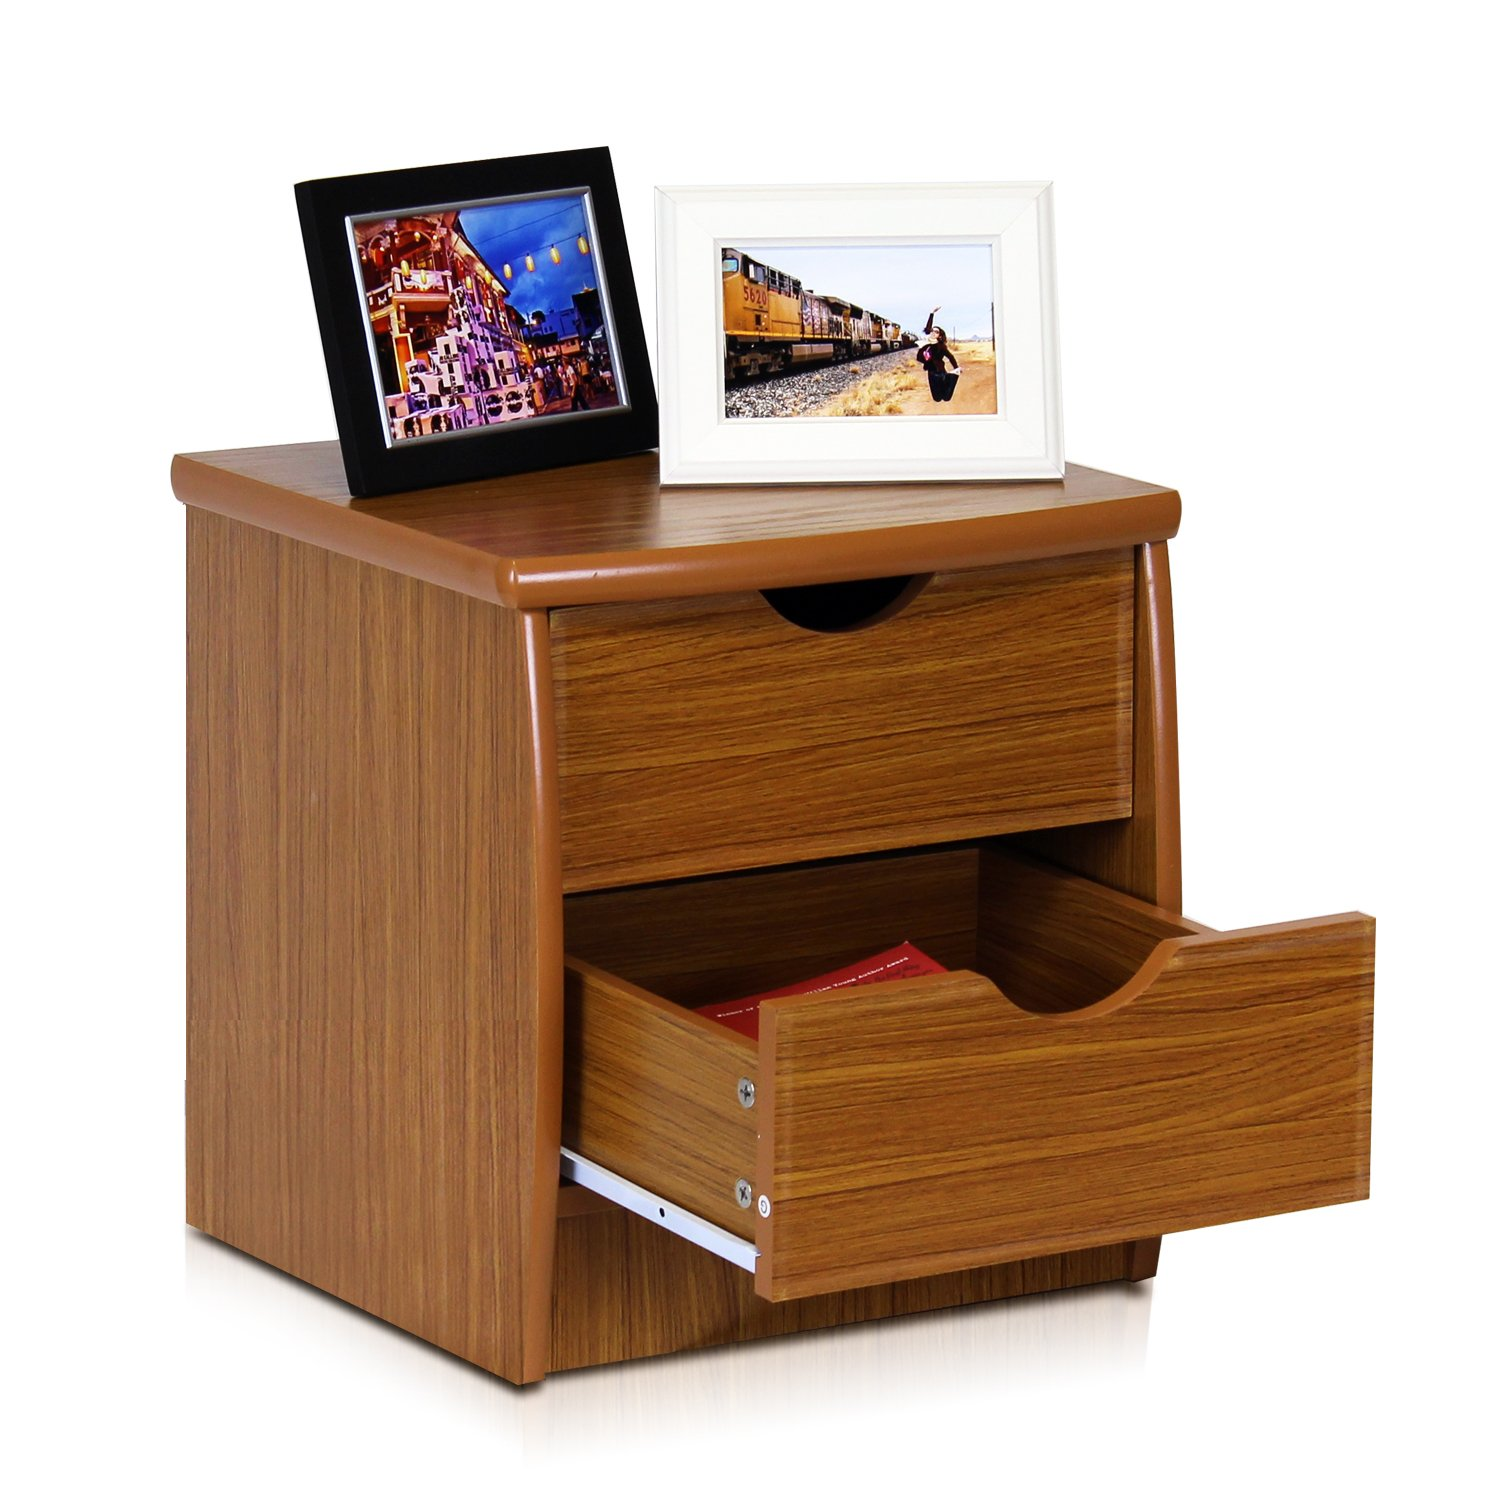 Furinno FNAK-11173EX Simple Design Bedside 2-Drawer Chest, Cherry by Furinno (Image #4)